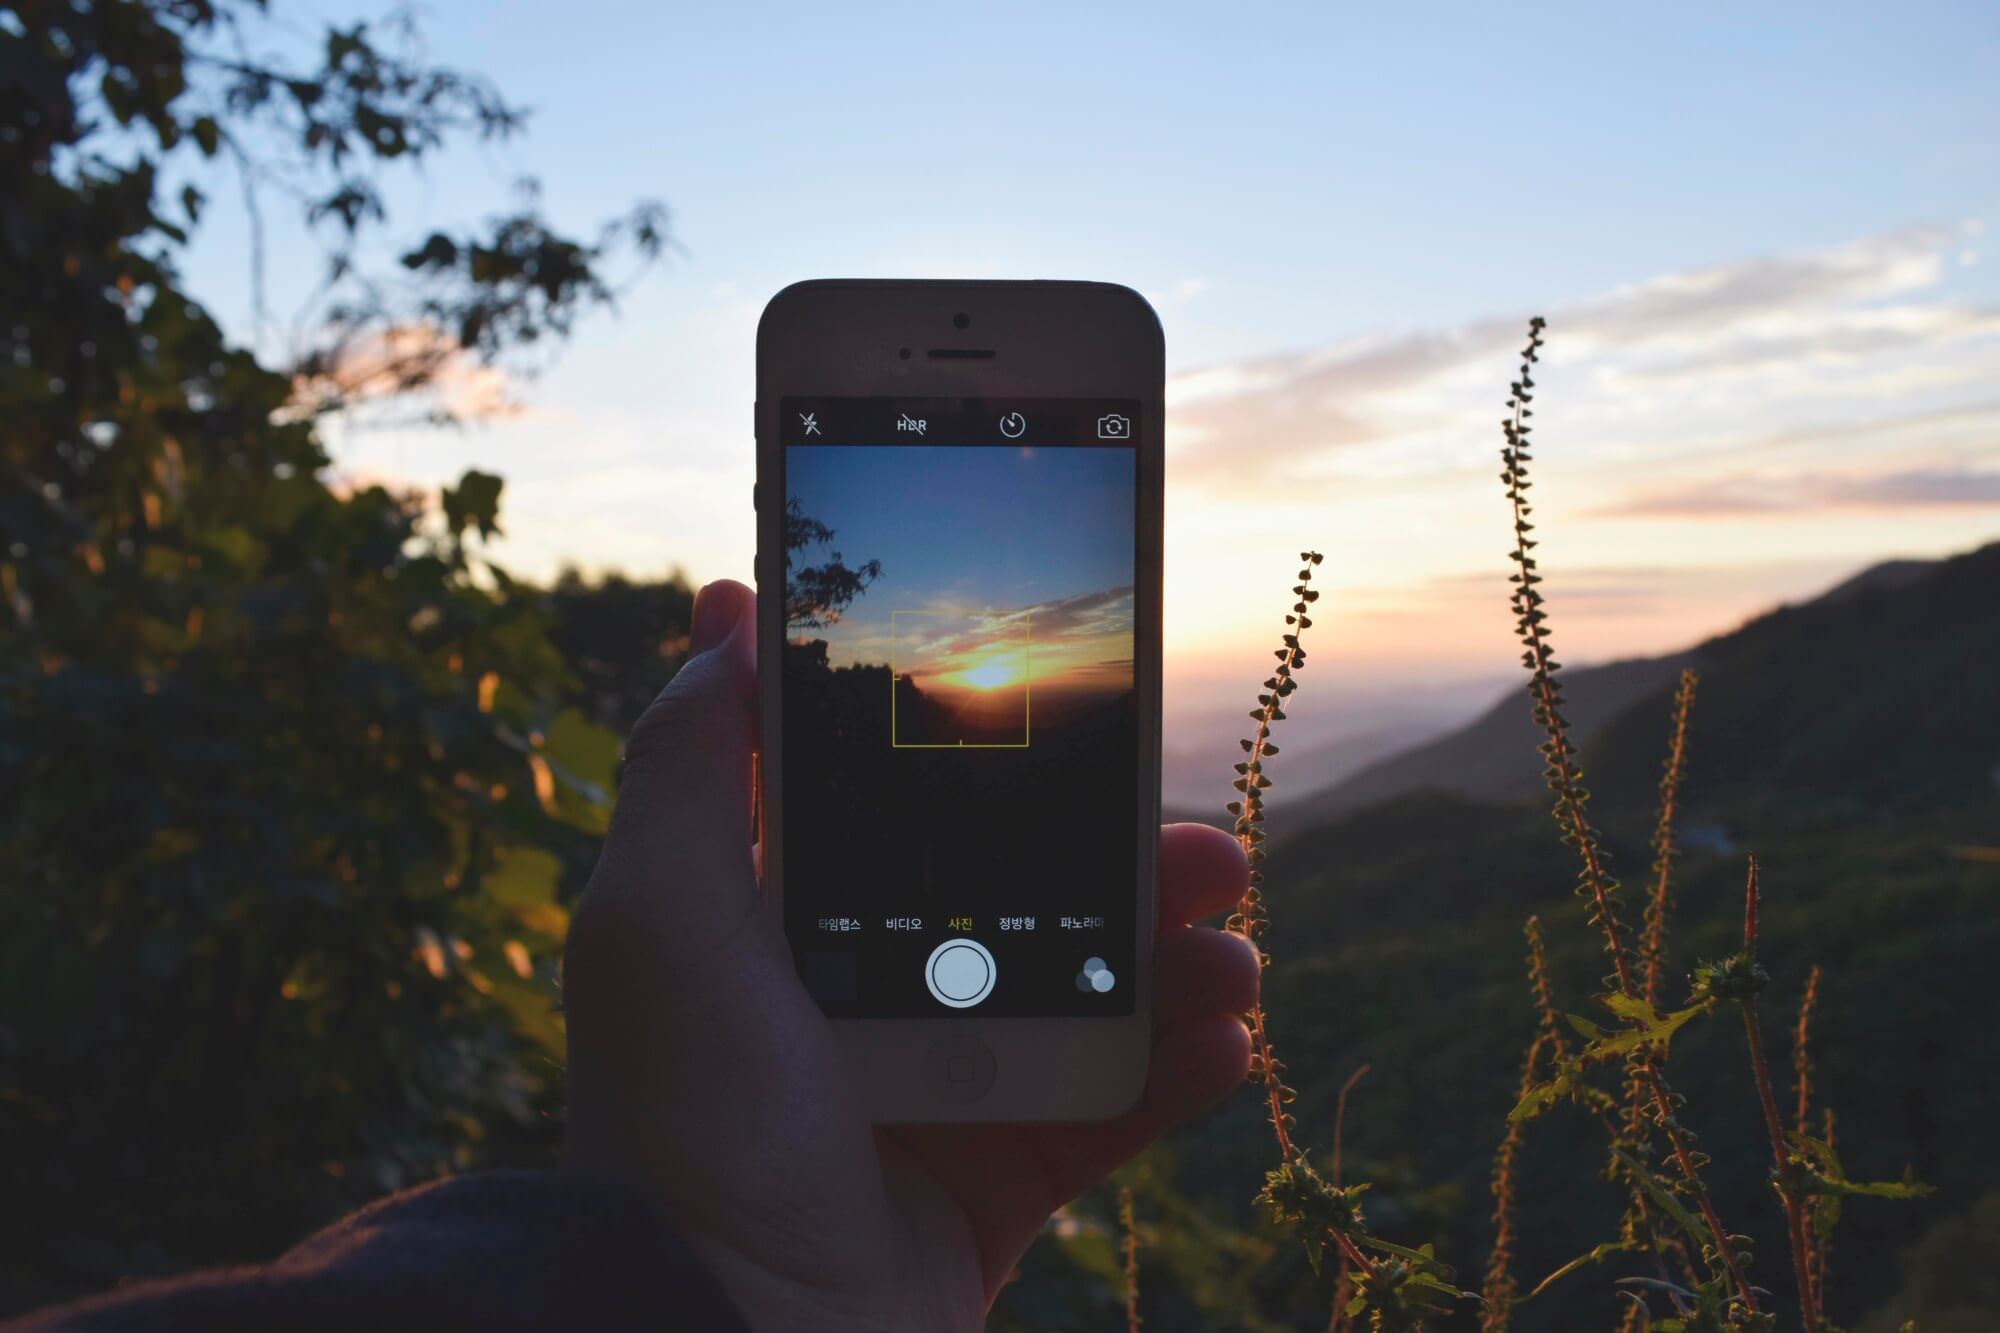 taking photos on a phone